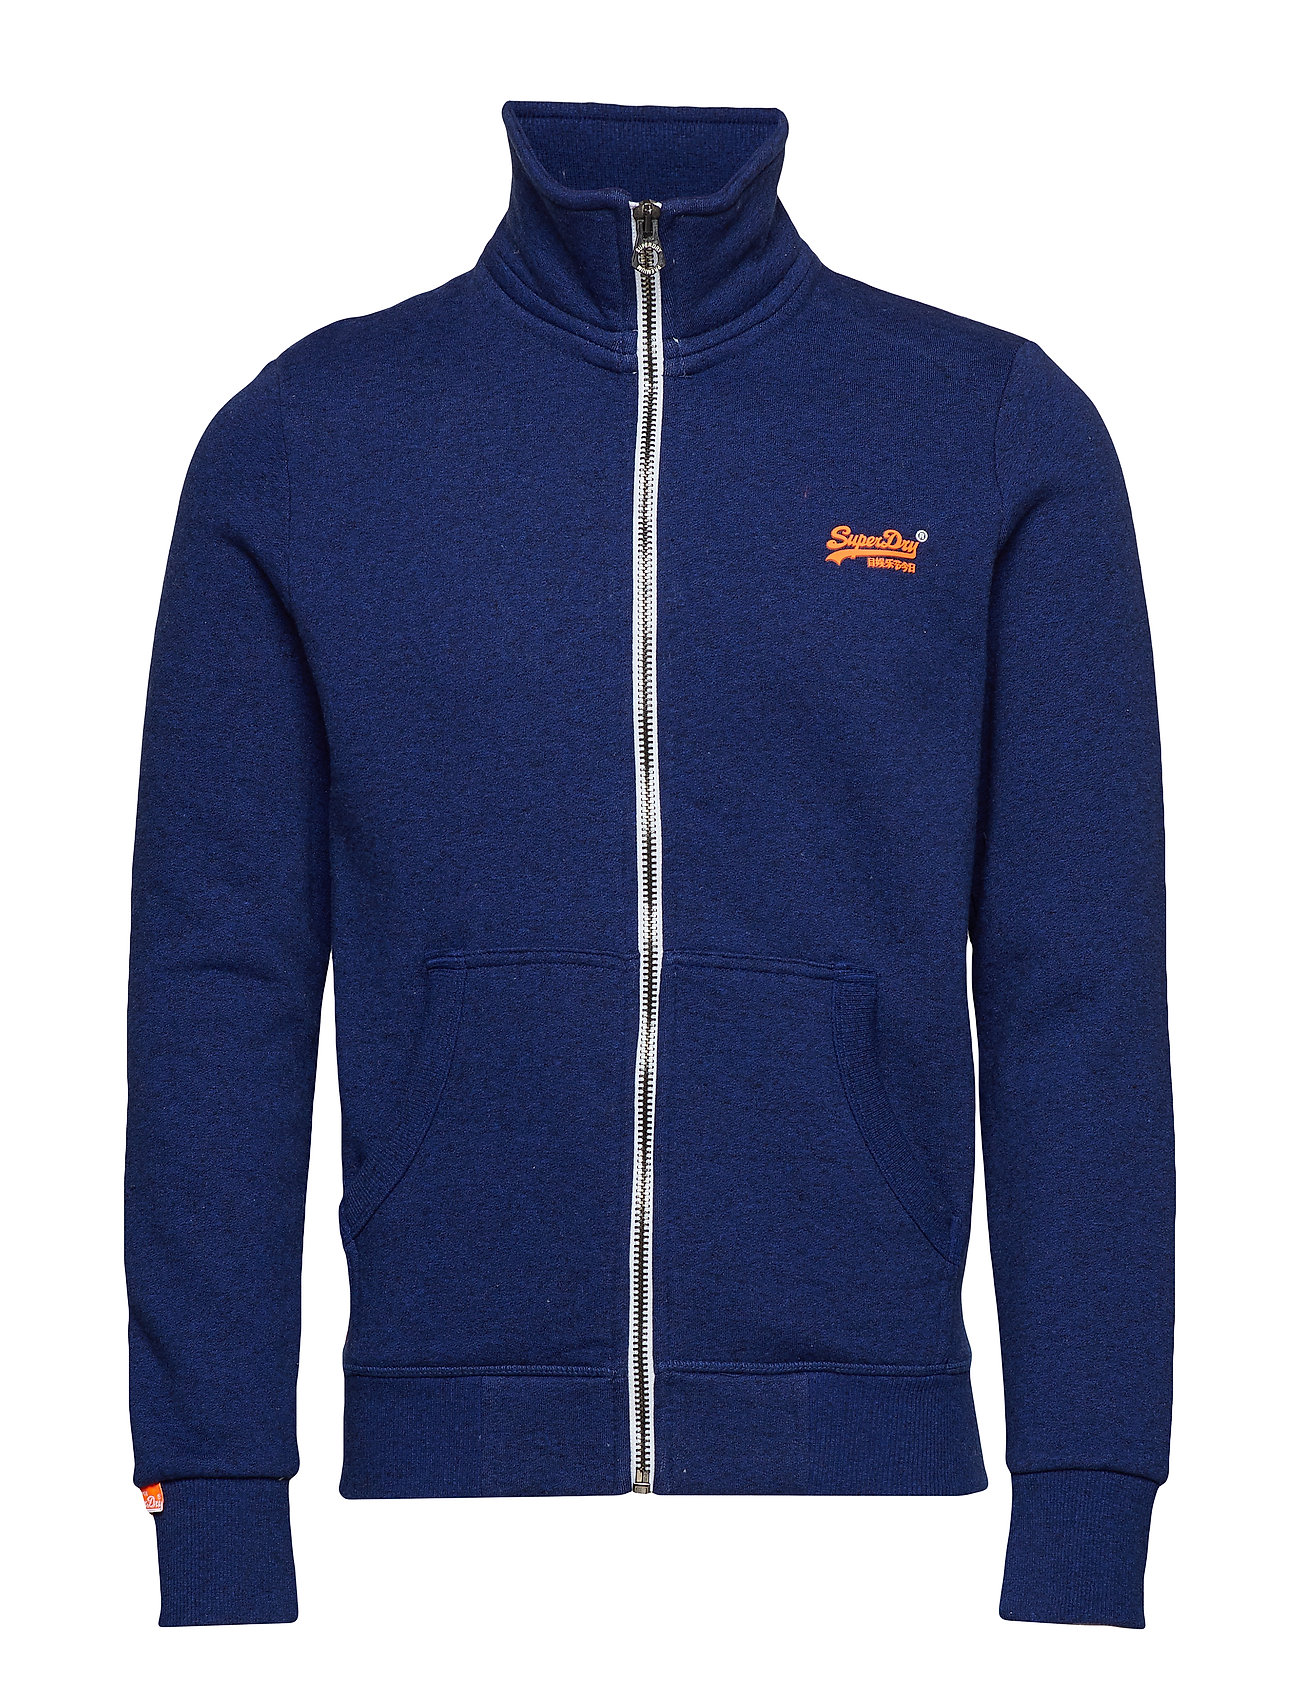 Superdry ORANGE LABEL TRACK TOP - SONIC BLAST BLUE